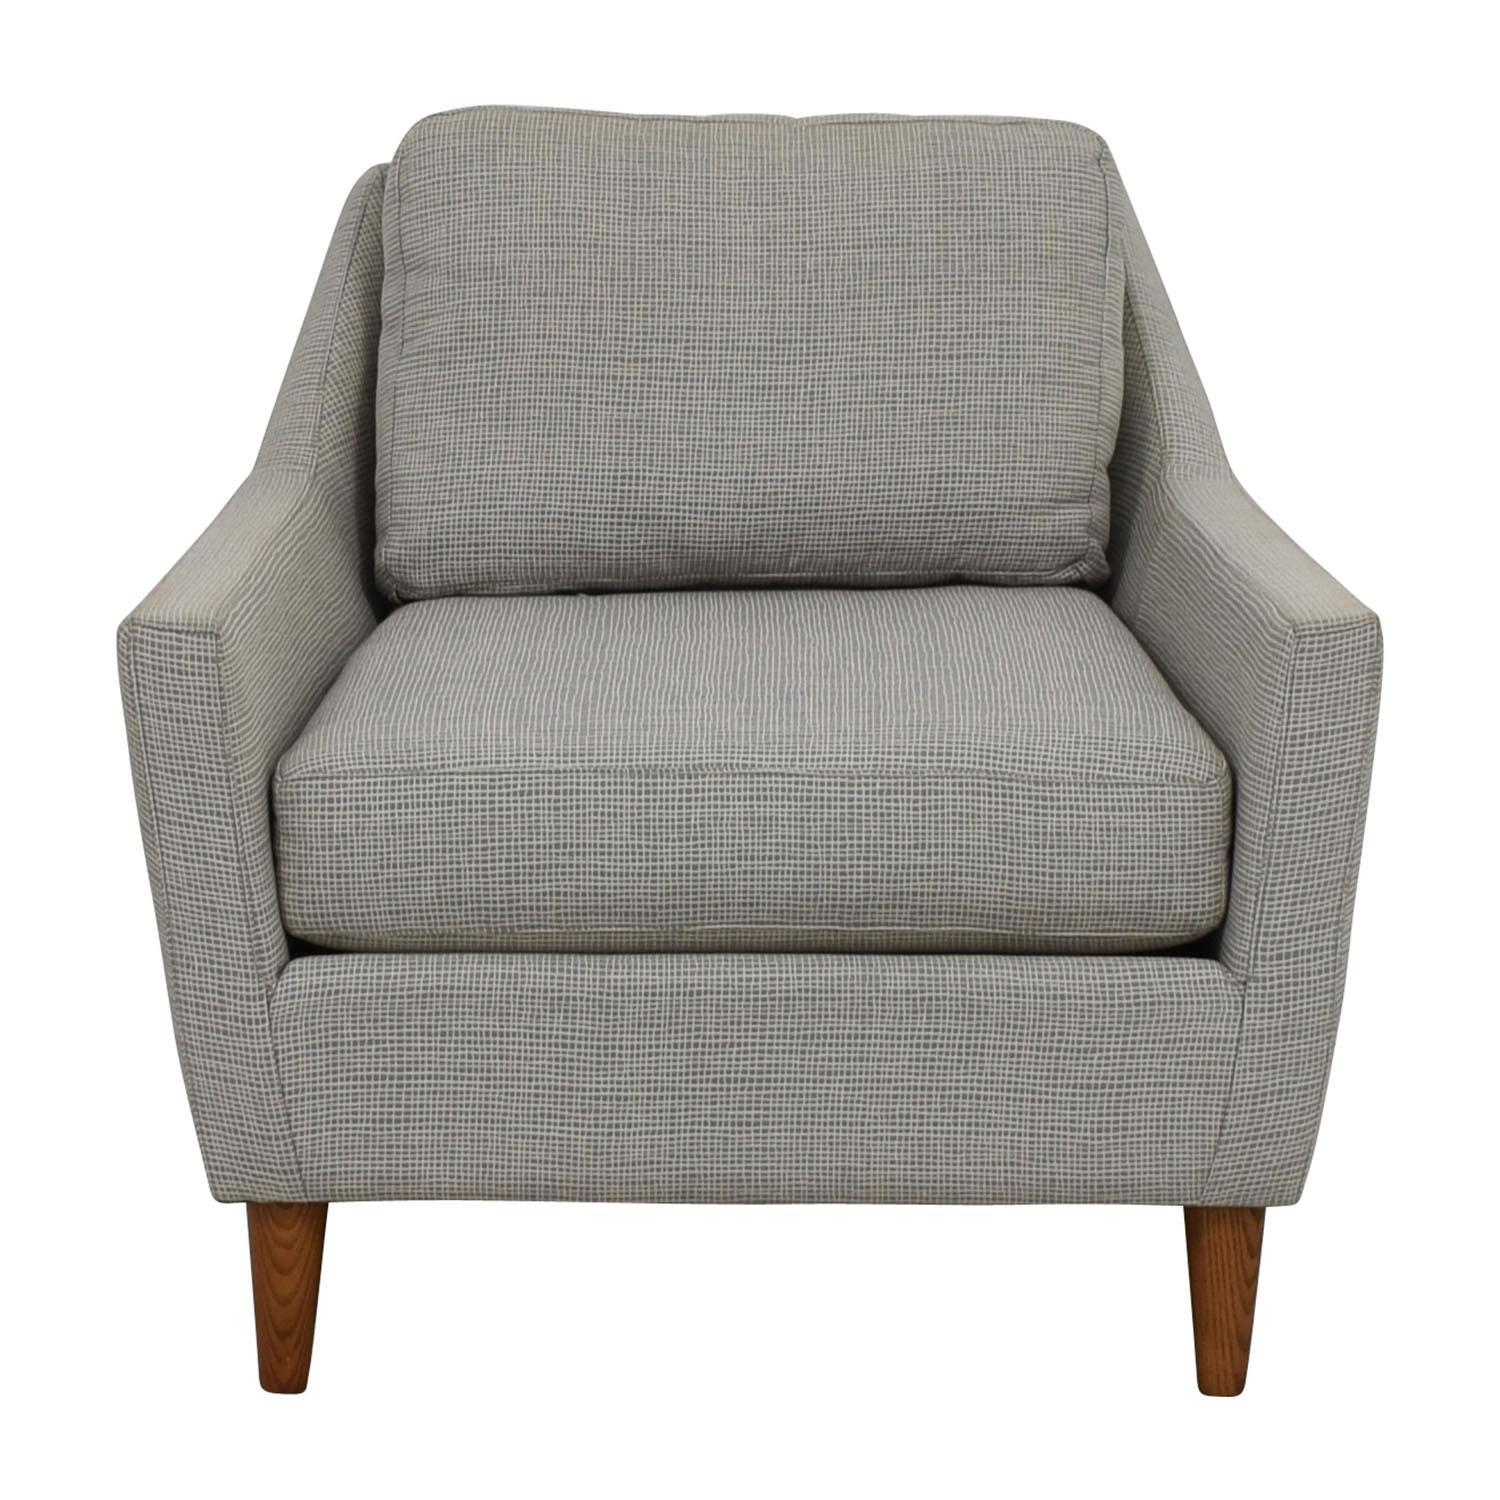 66% Off – West Elm West Elm Grey Everett Sofa Chair / Chairs With Elm Sofa Chairs (Photo 1 of 20)